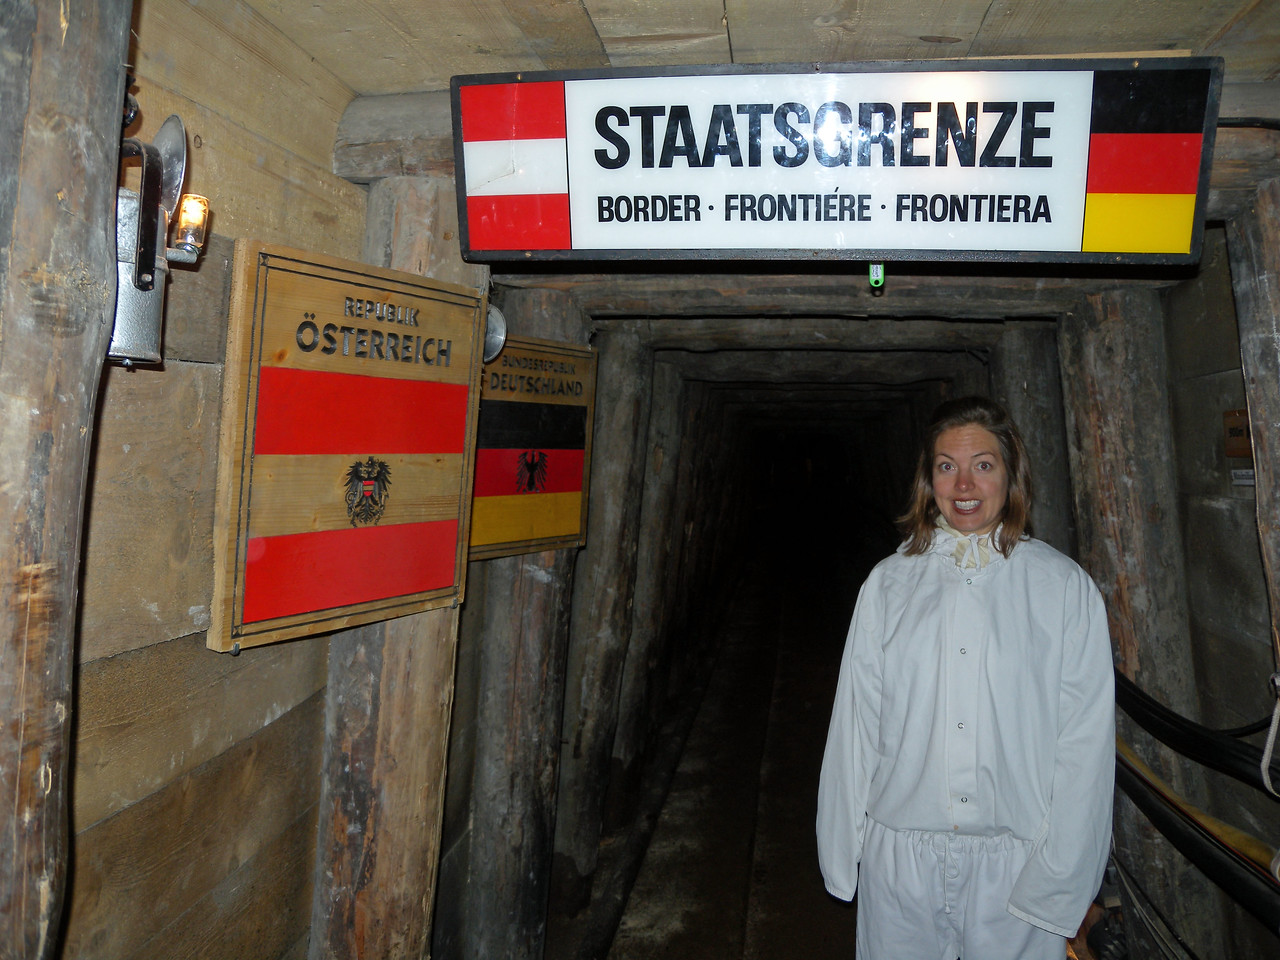 We crossed into Germany hundreds of feet below ground.